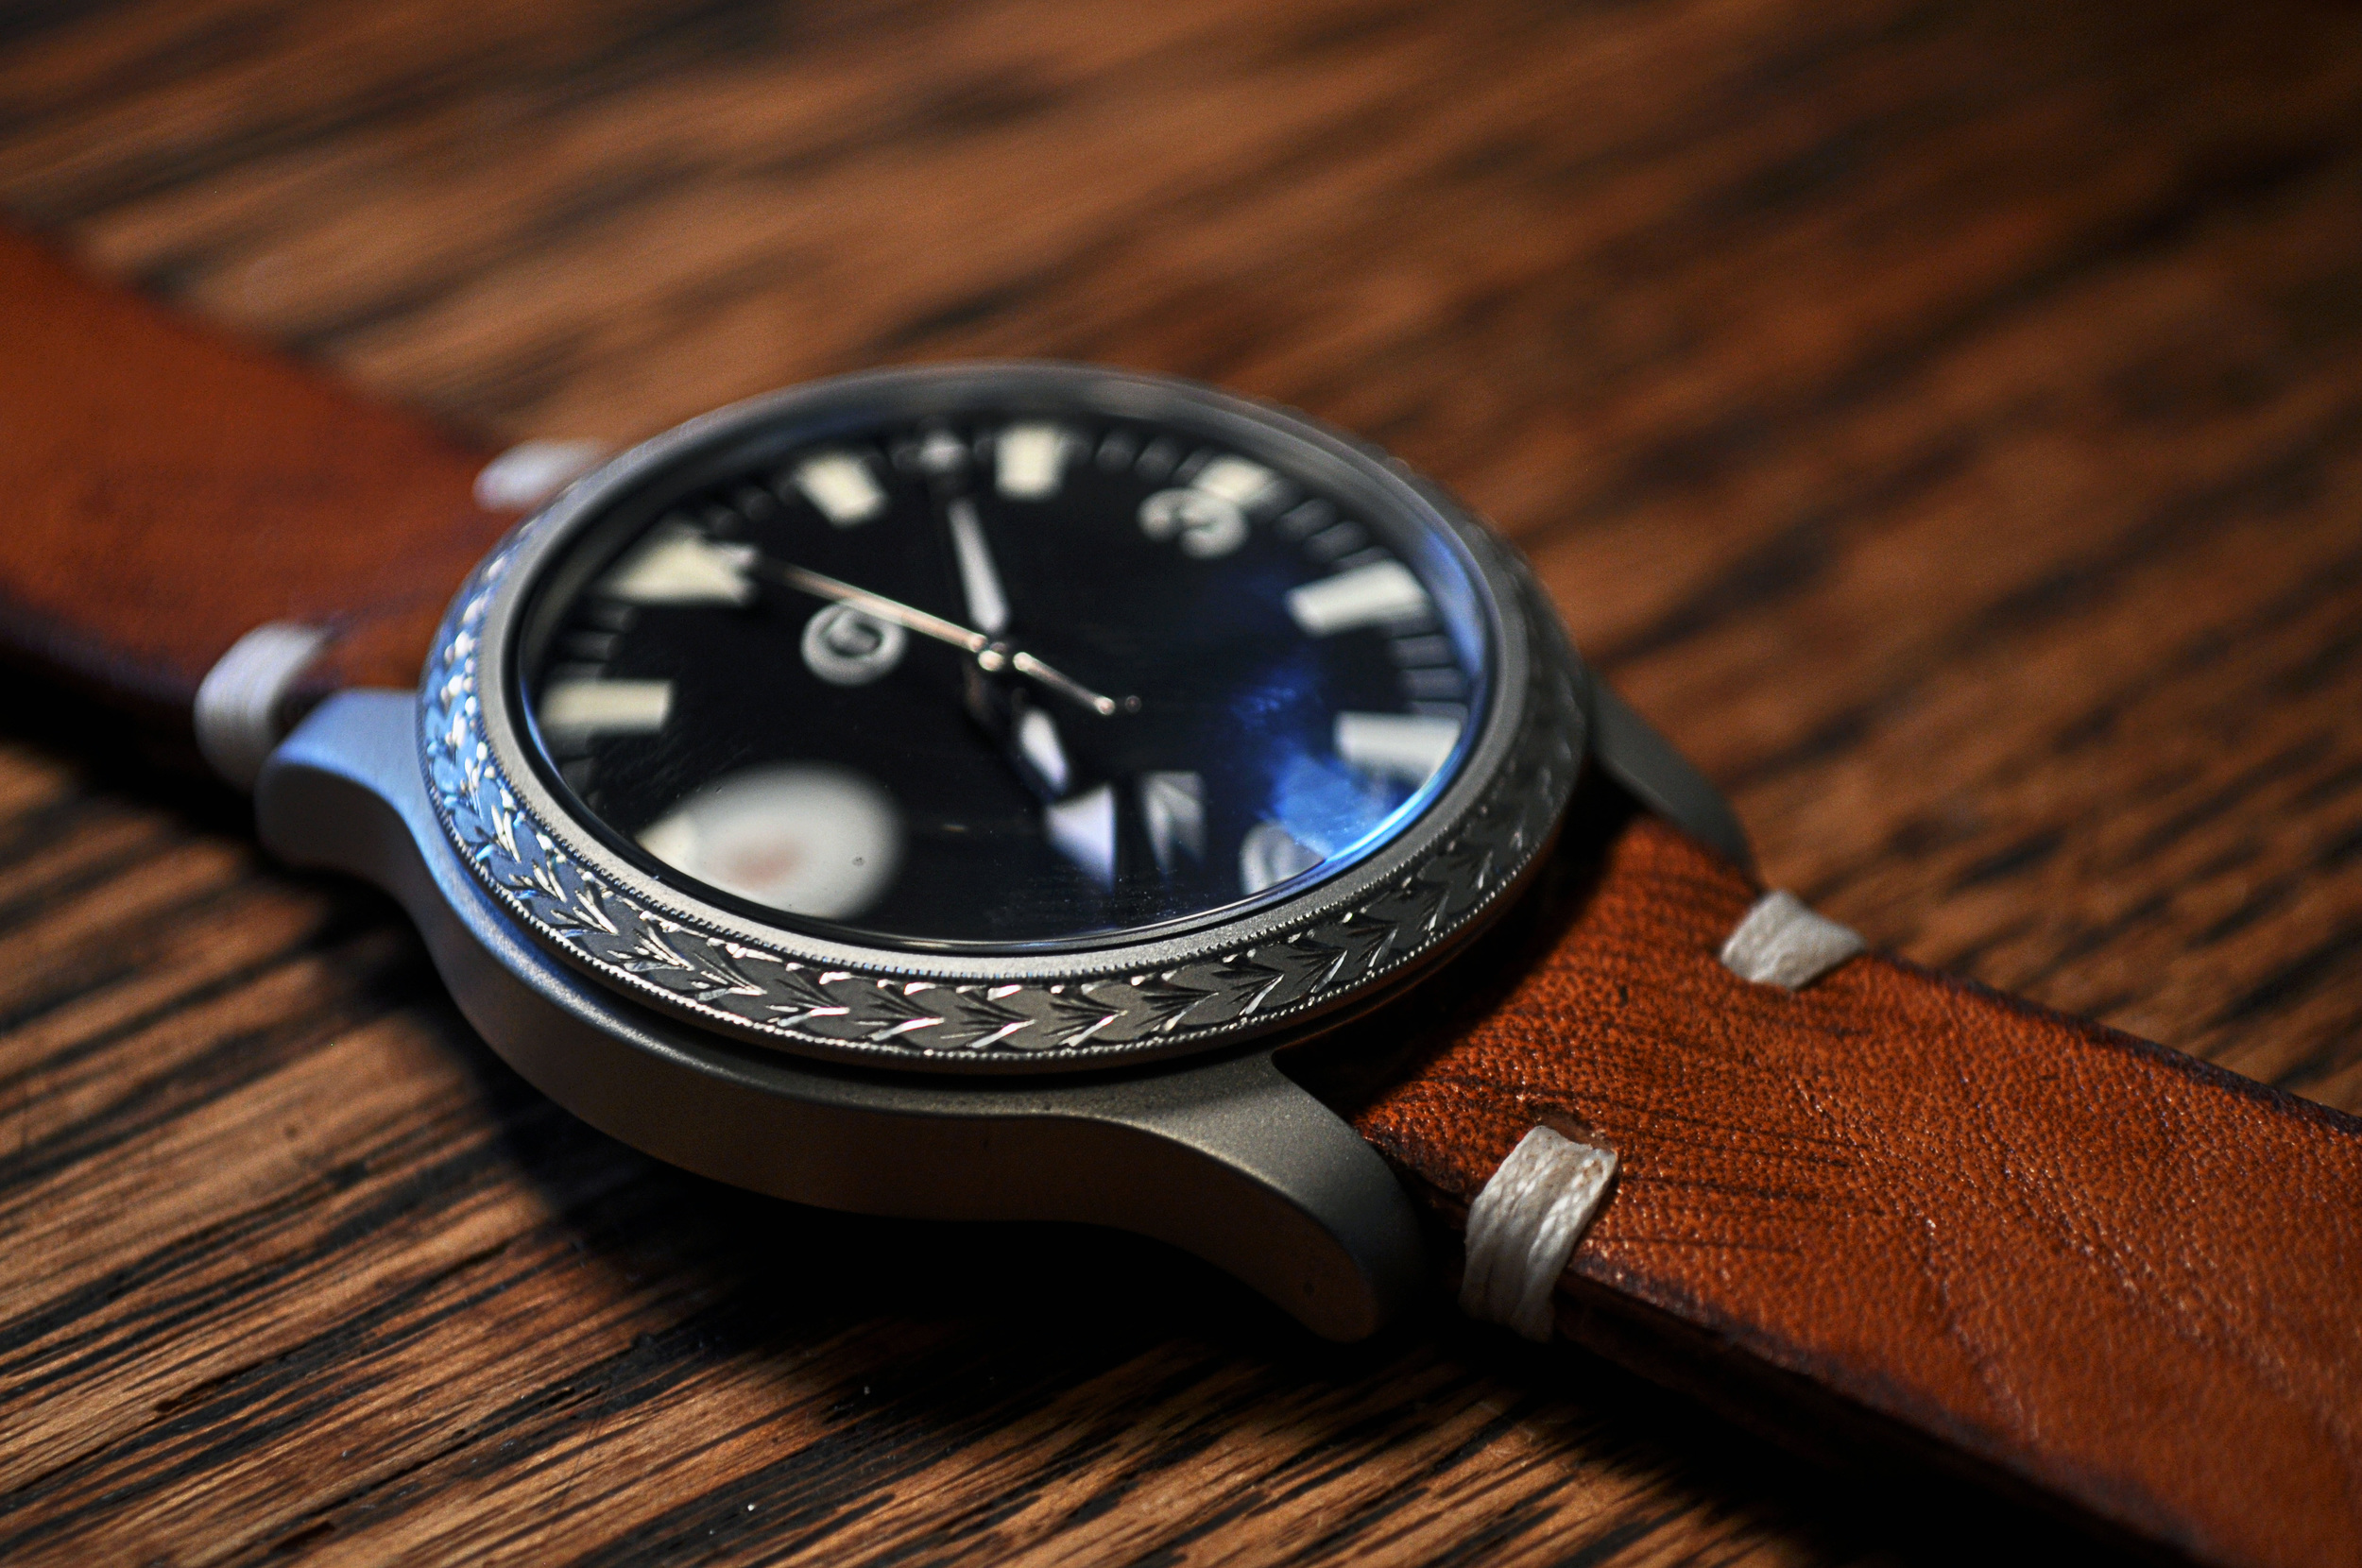 Modified SNK809 with a hand engraved bezel